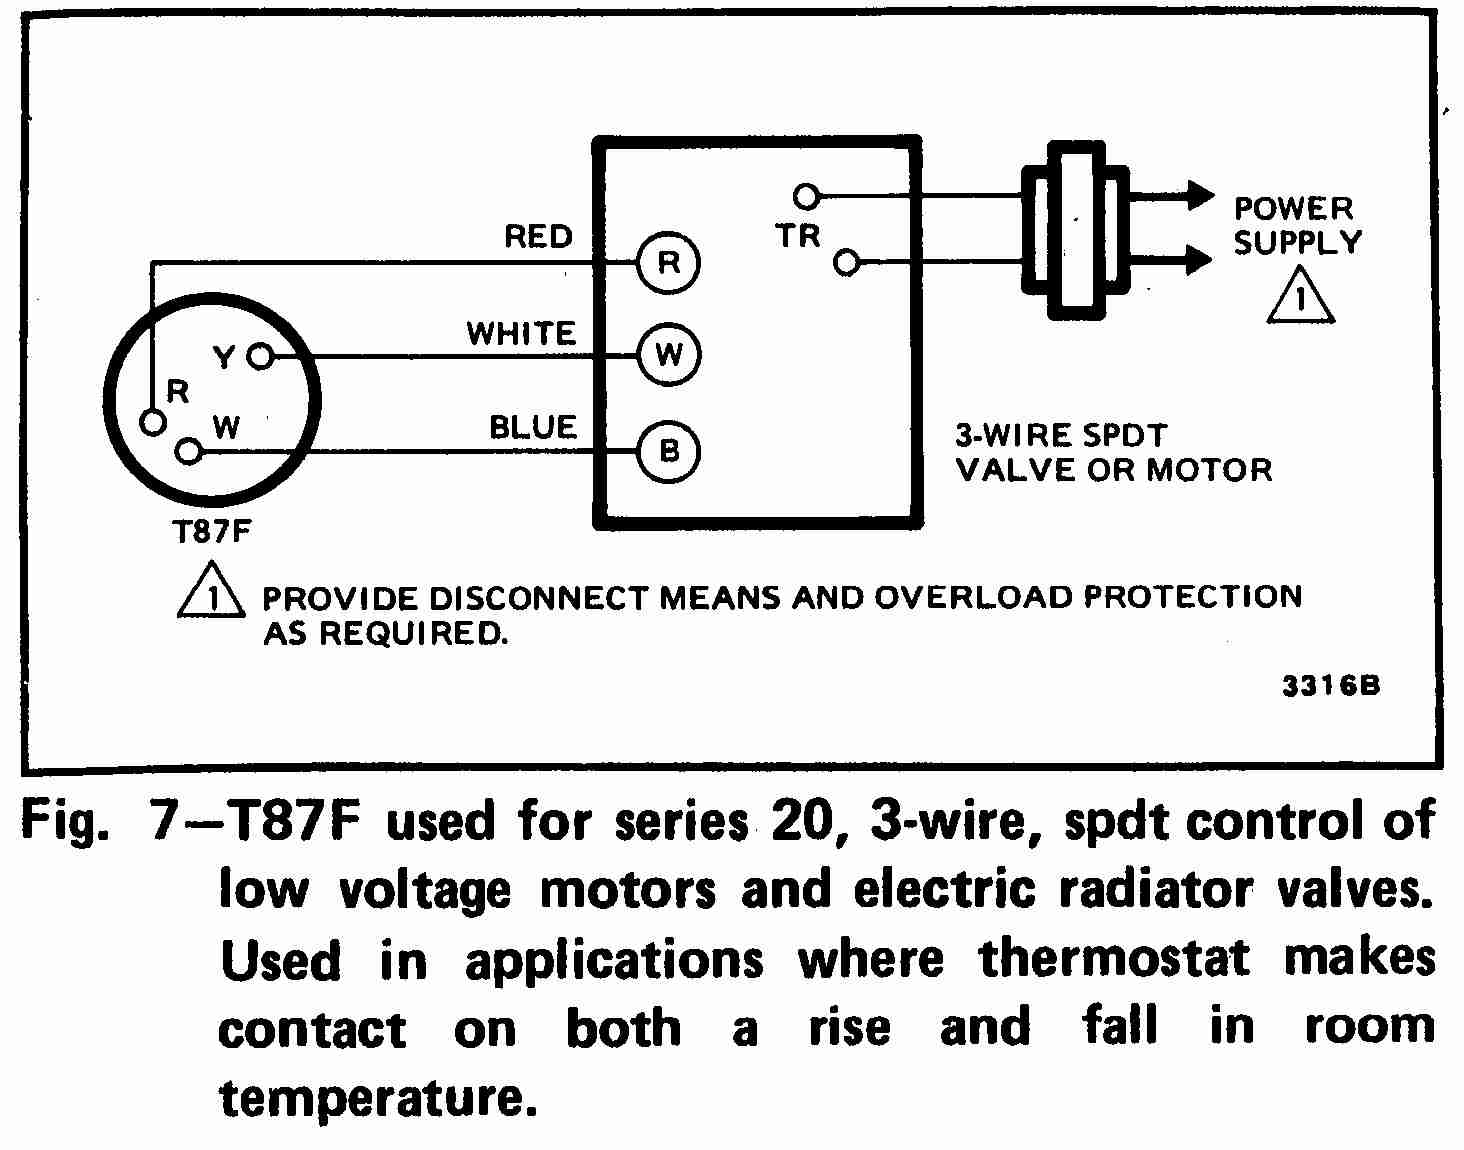 Room thermostat wiring diagrams for hvac systems 3 wire spdt honeywell t87f thermostat wiring diagram asfbconference2016 Images